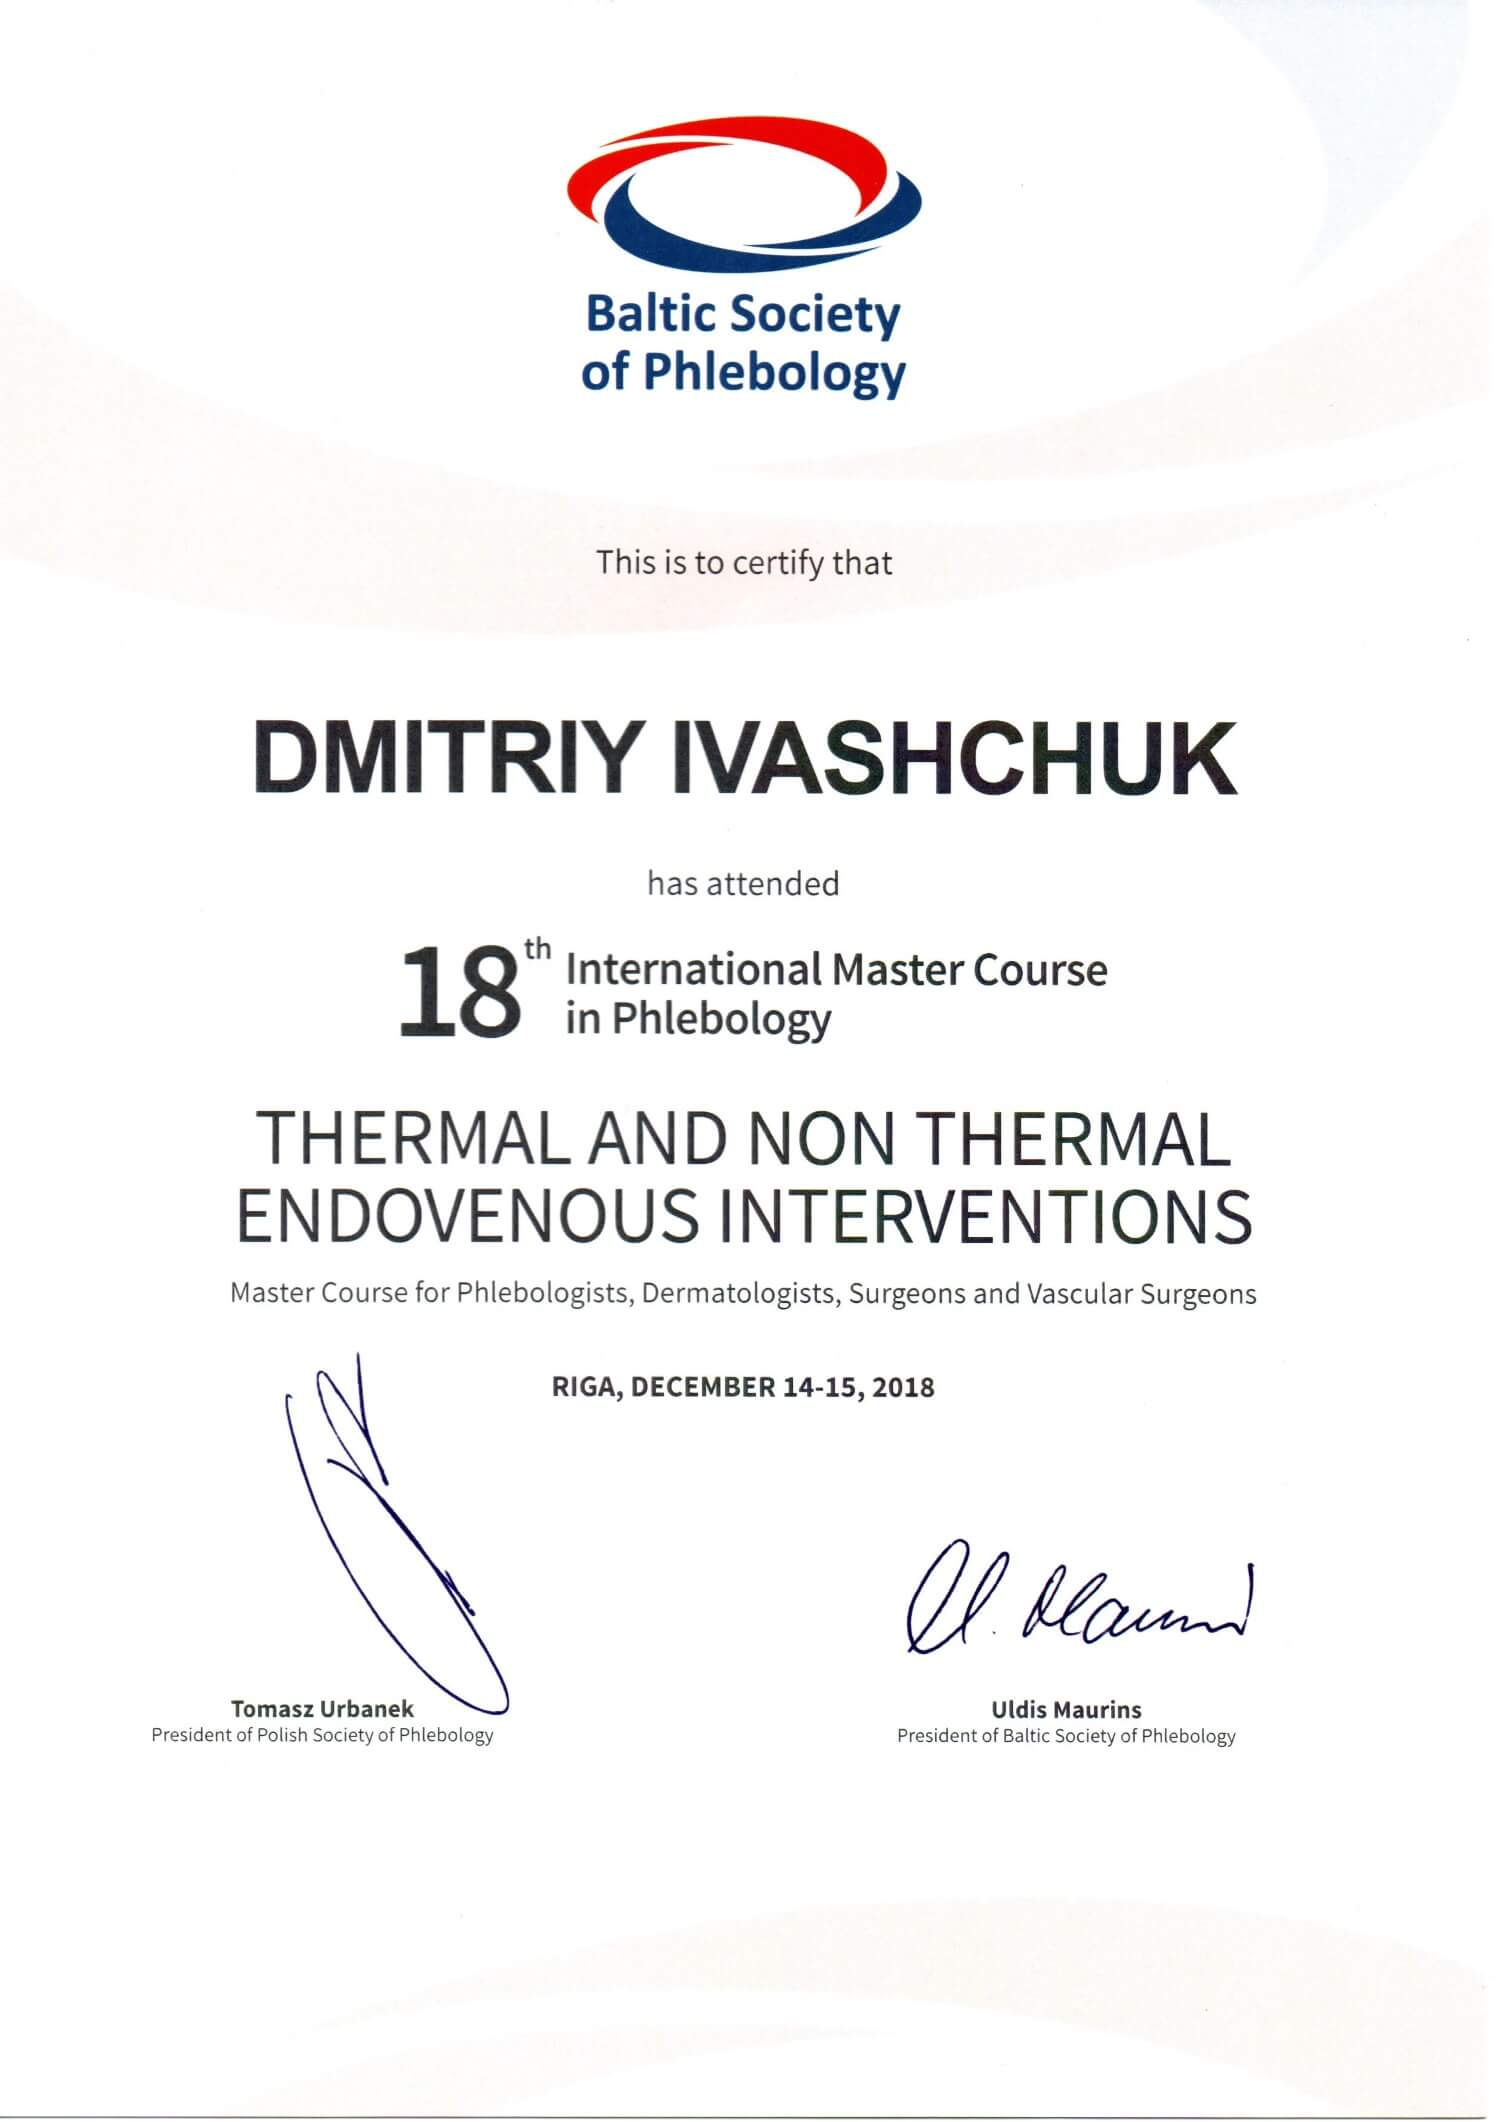 Конгресс Thermal and non thermal endovenous interventions